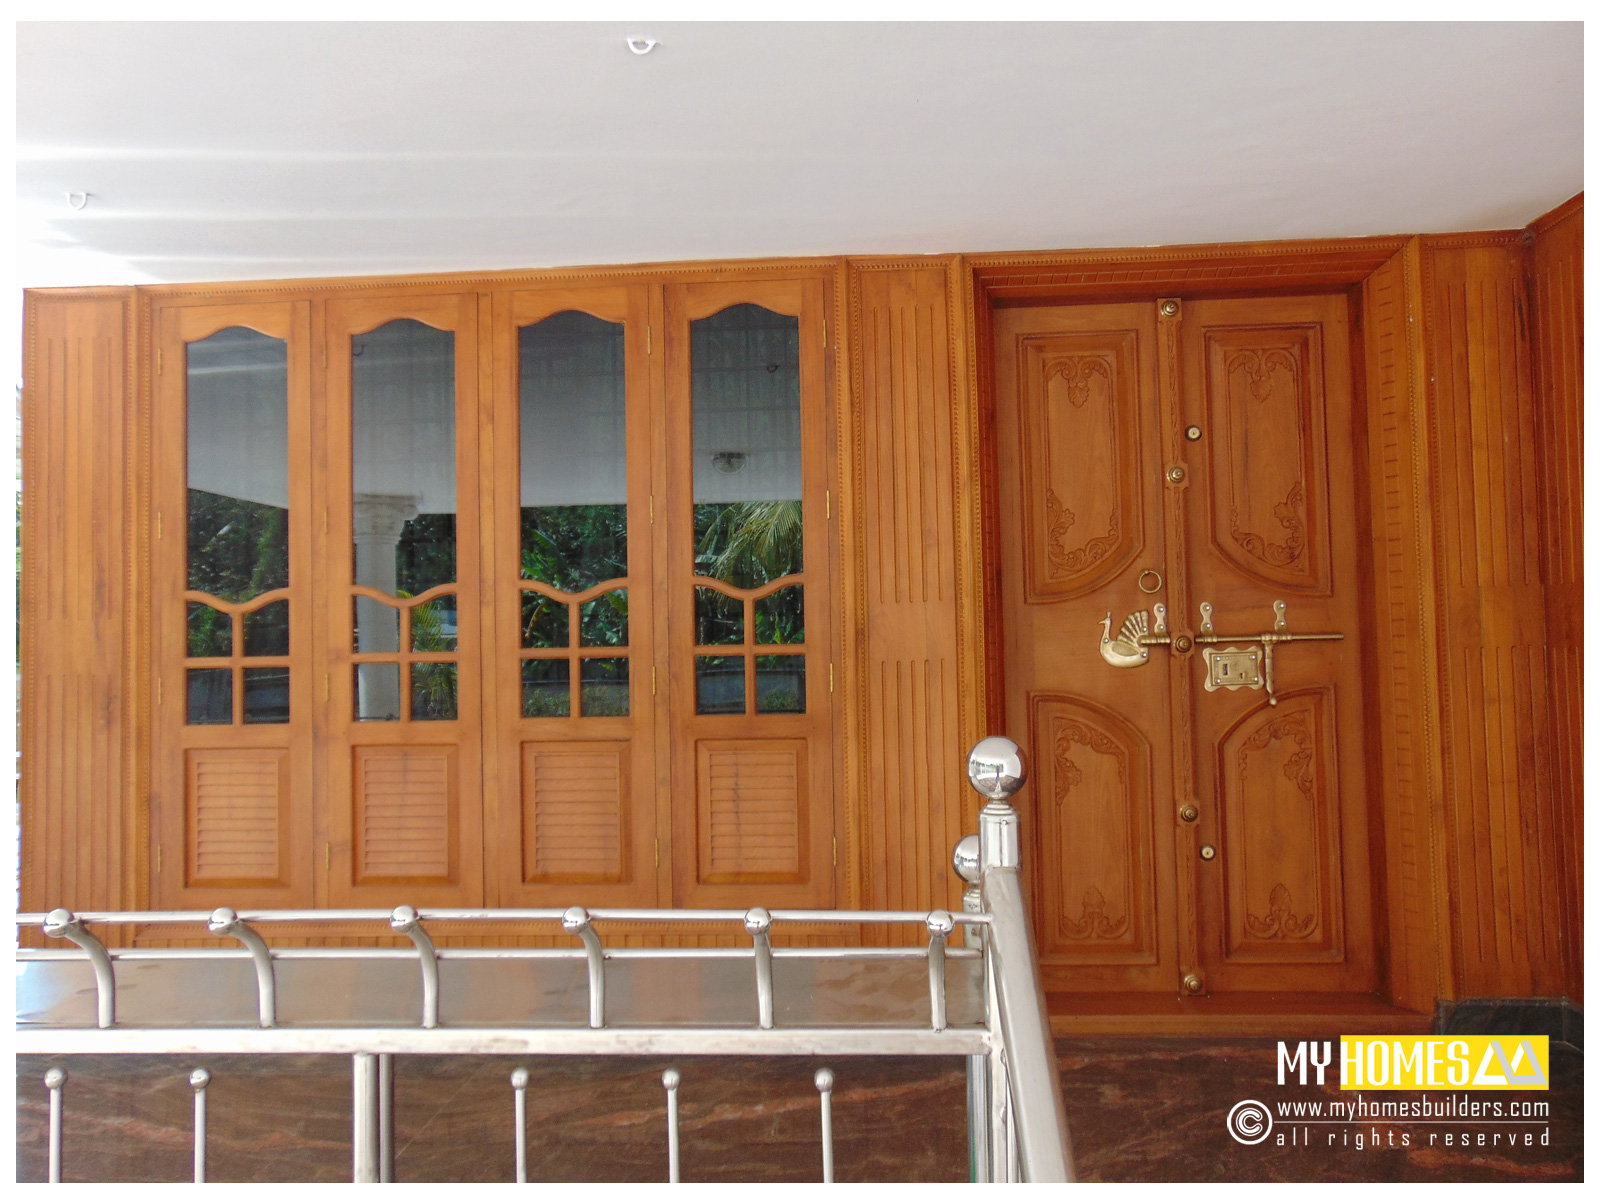 Single and double style door design kerala for house in india - Indian home front door design ...